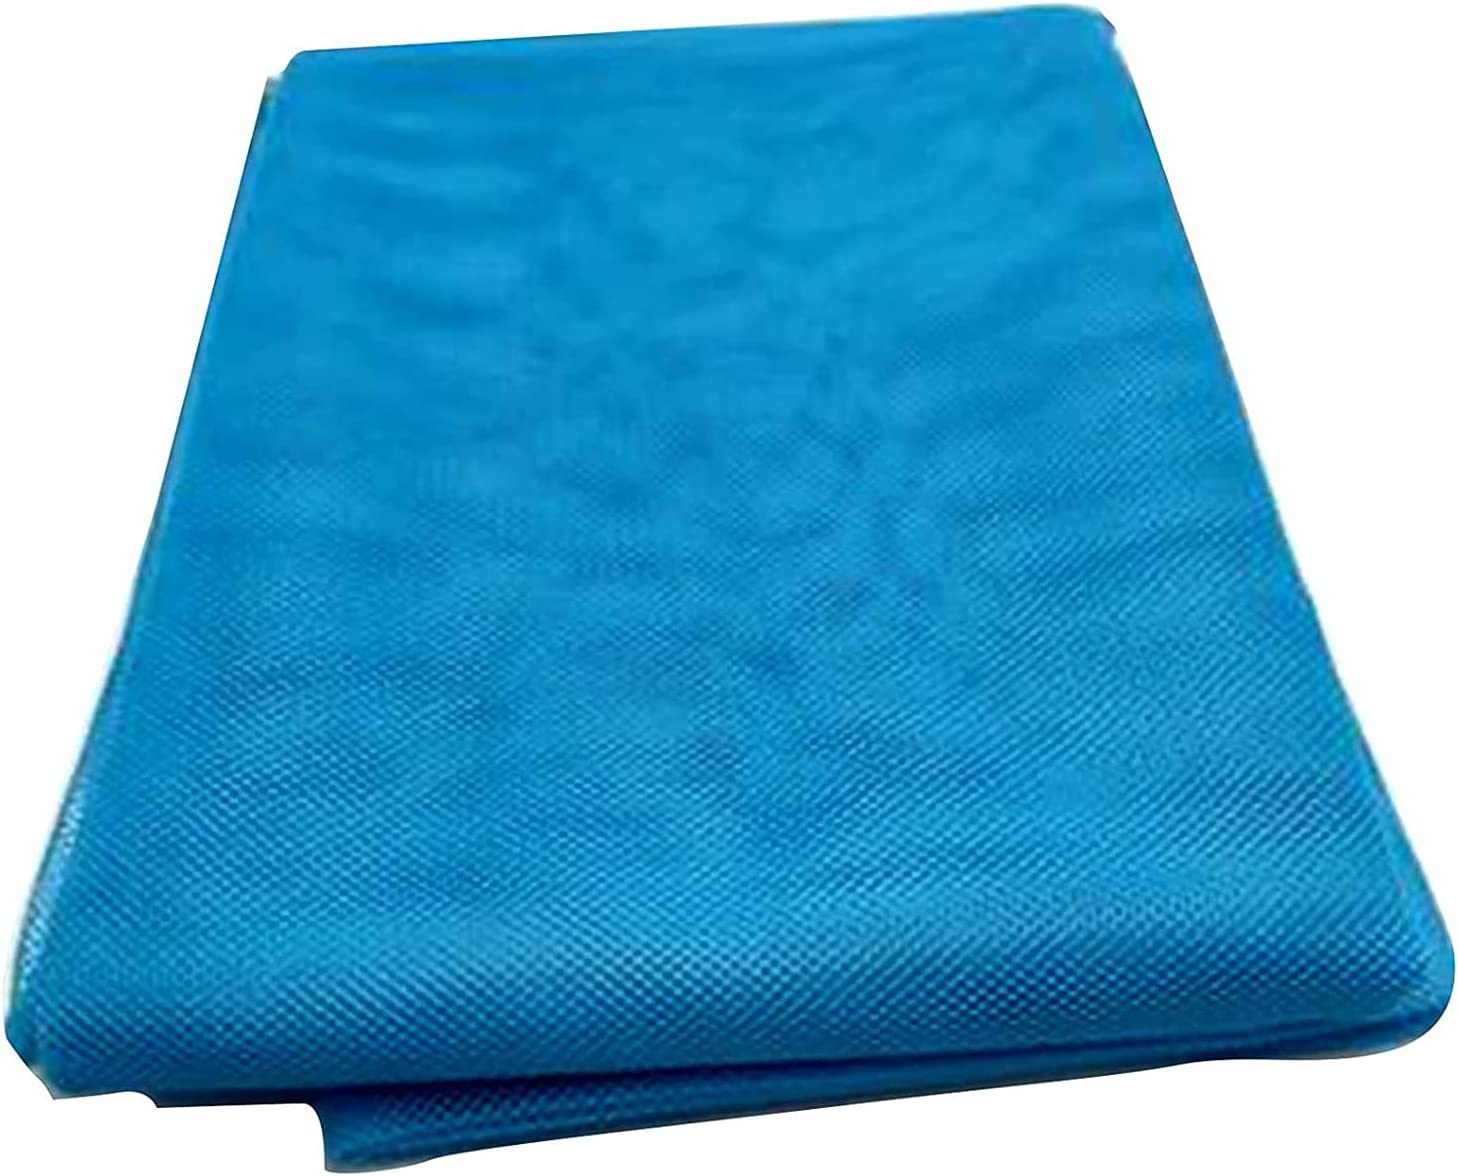 WGLL Camping Blanket Indoor for Max 59% OFF Travel Outdoor San Jose Mall